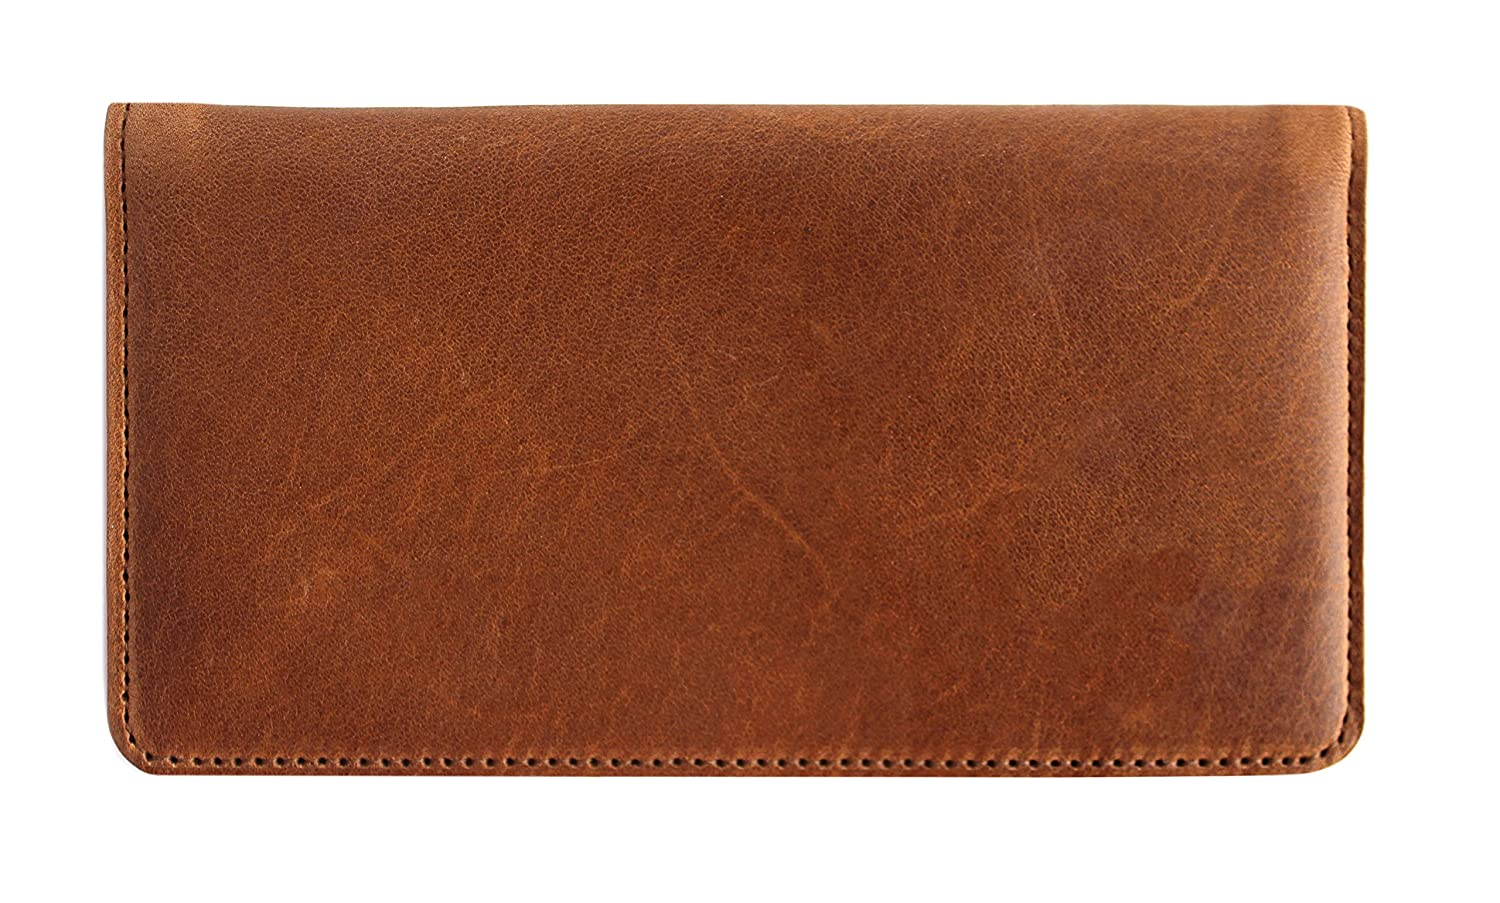 Genuine Top Grain Brown Leather Casual Checkbook Cover 011-000D1461-lthrbrncb